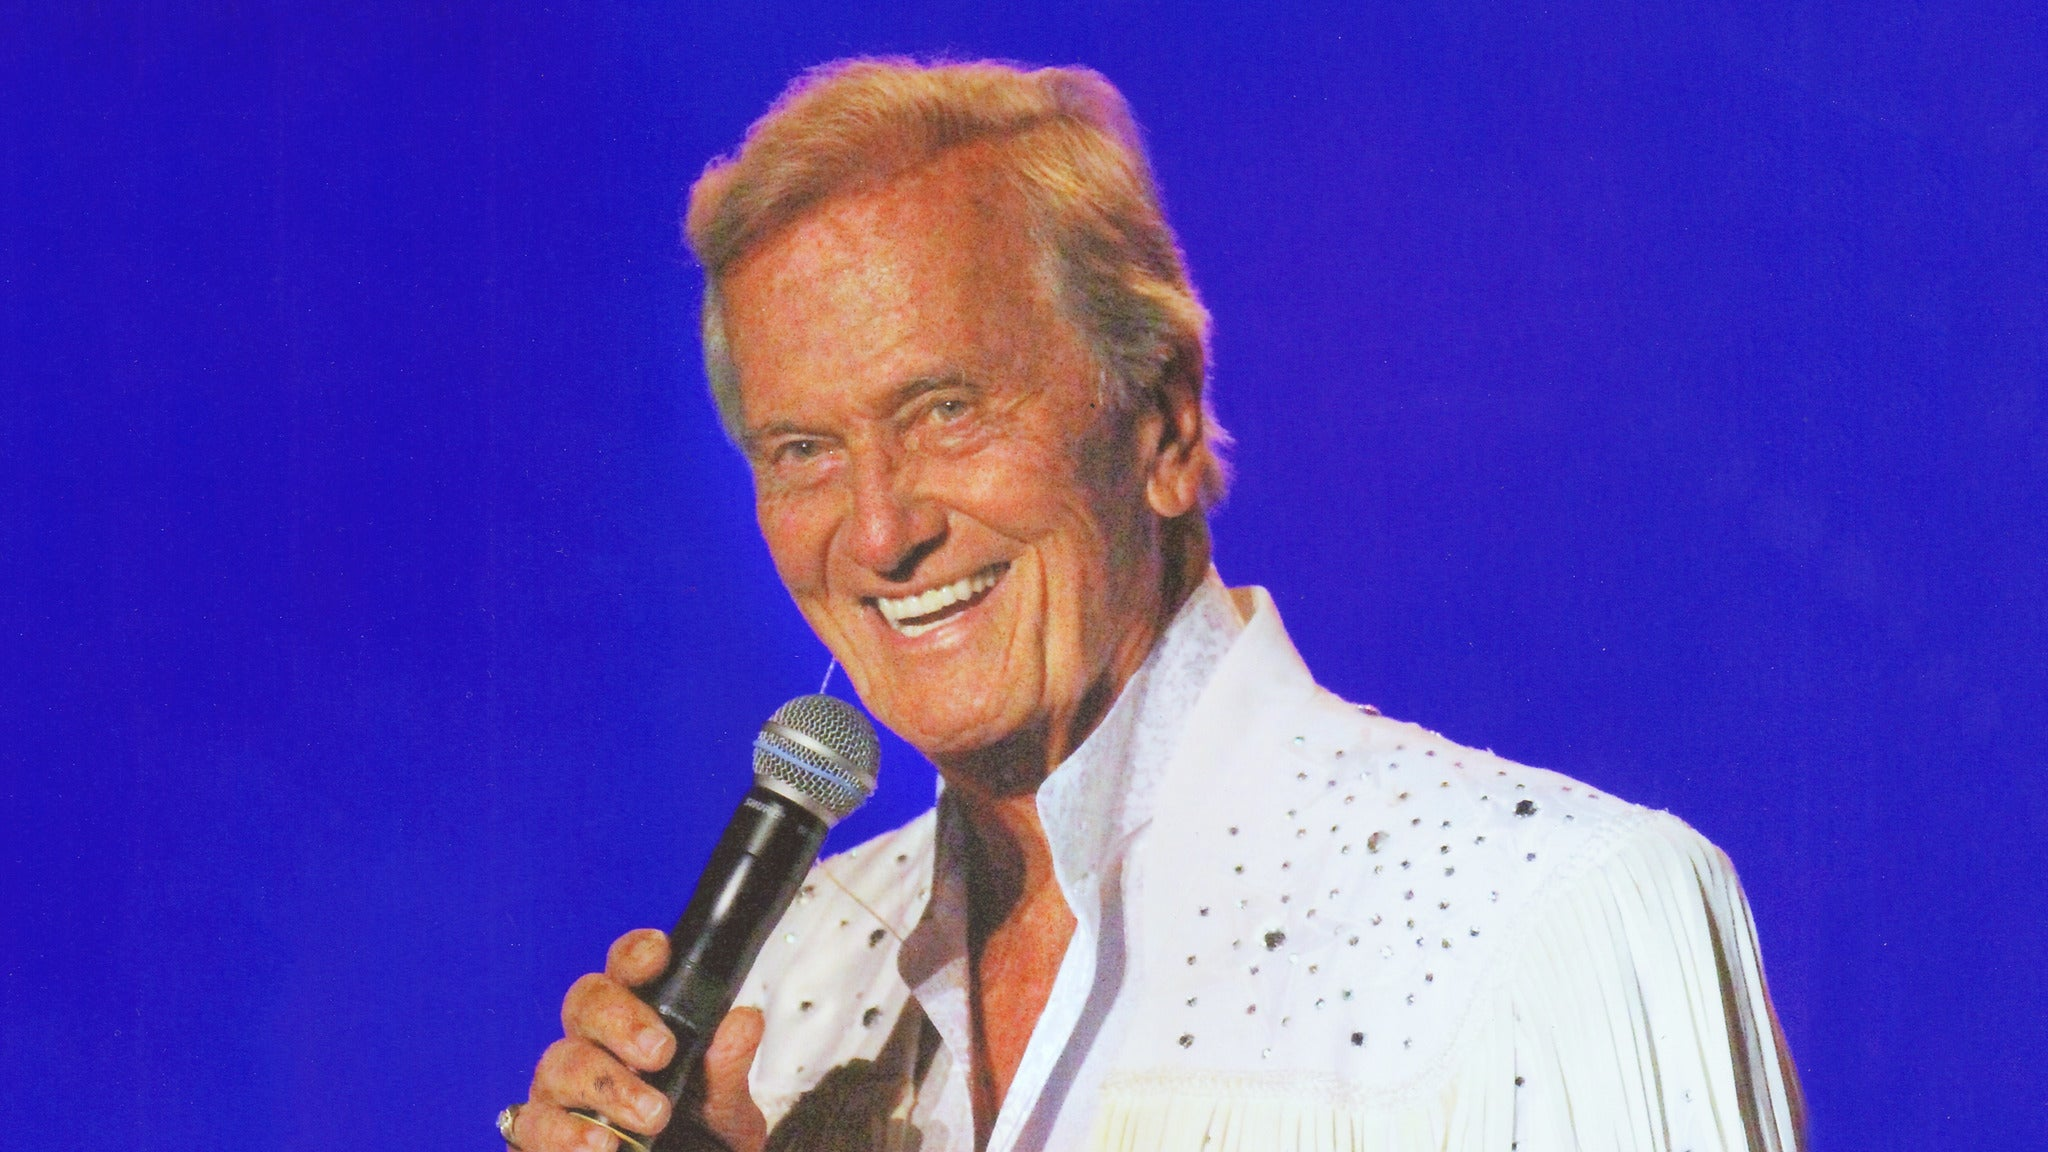 Pat Boone at The Coach House